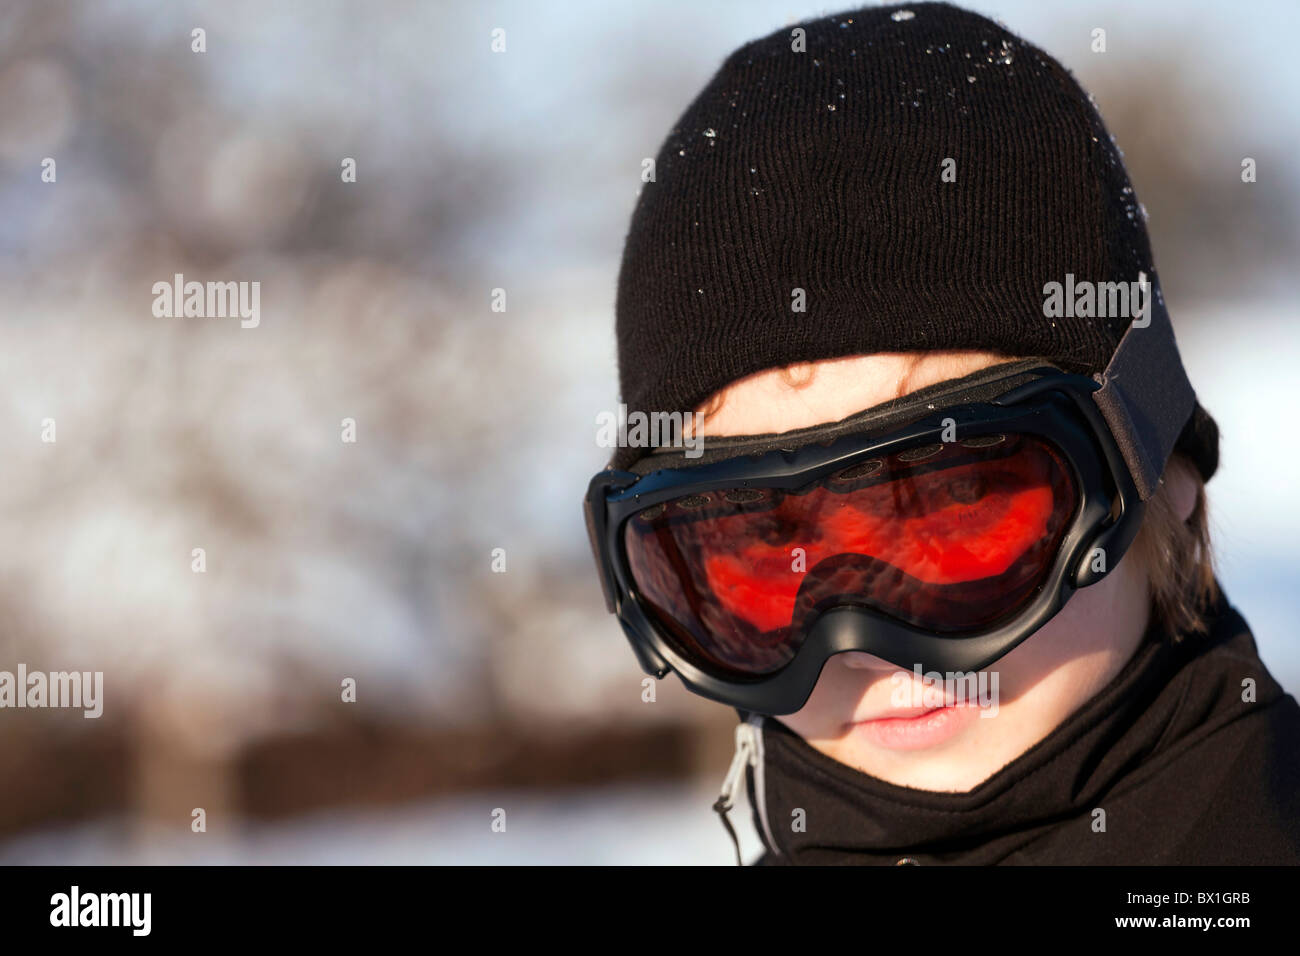 Closeup of the teenager with ski goggles. - Stock Image